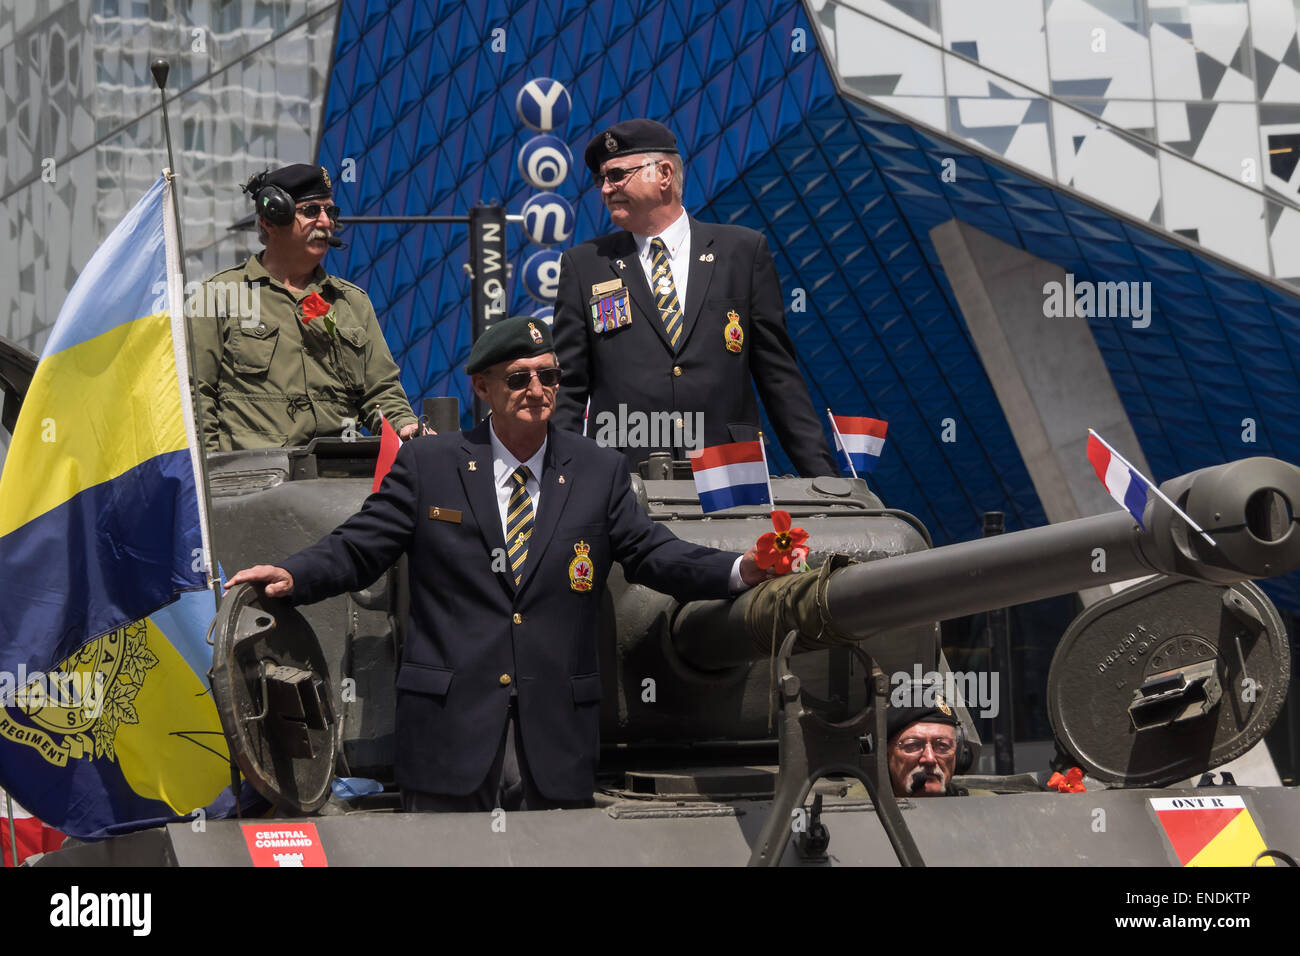 TORONTO, CANADA - MAY 2, 2015: Military parade takes place in the street. People celebrate the 70th anniversary - Stock Image